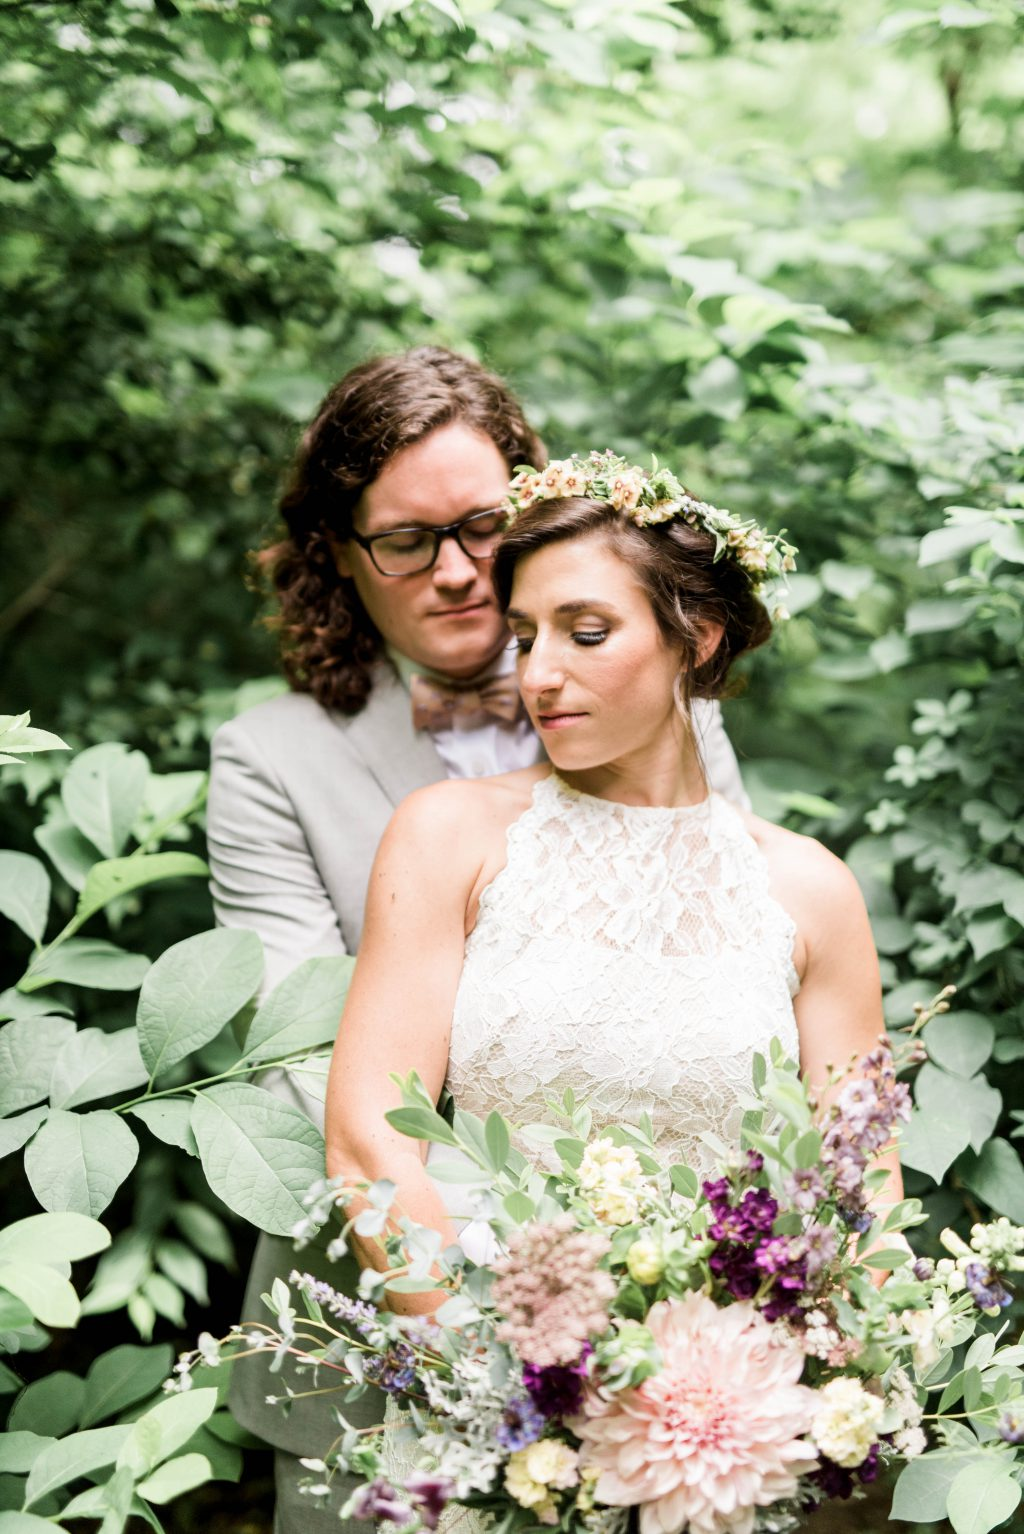 awbury-arboretum-wedding-DIY-boho-summer-haley-richter-photography-096